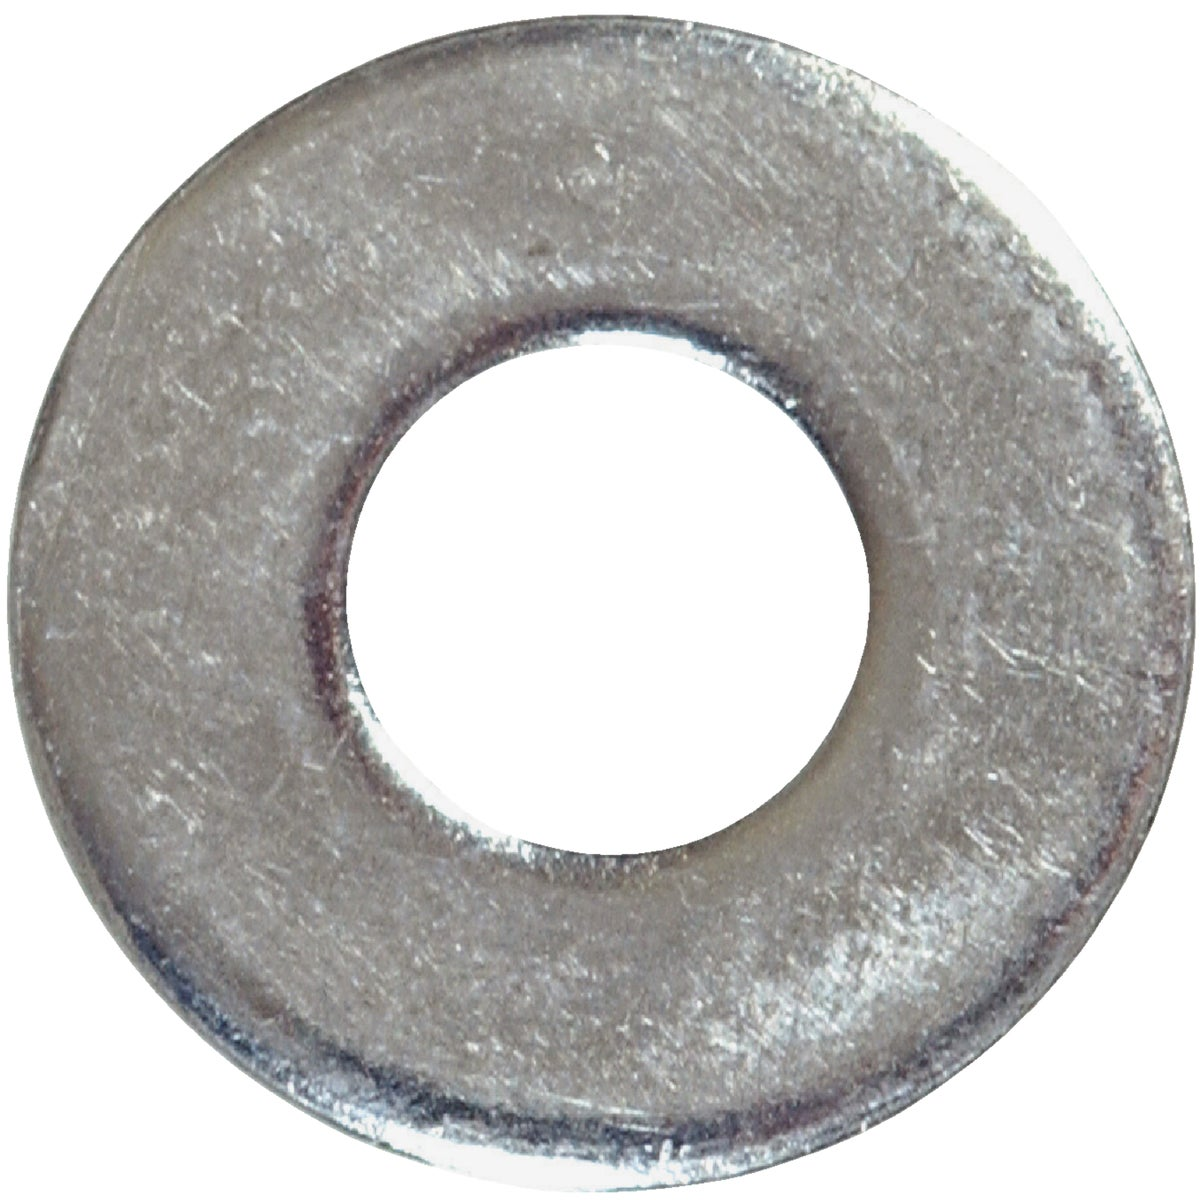 "5LB 7/16"" USS FLT WASHER - 270015 by Hillman Fastener"